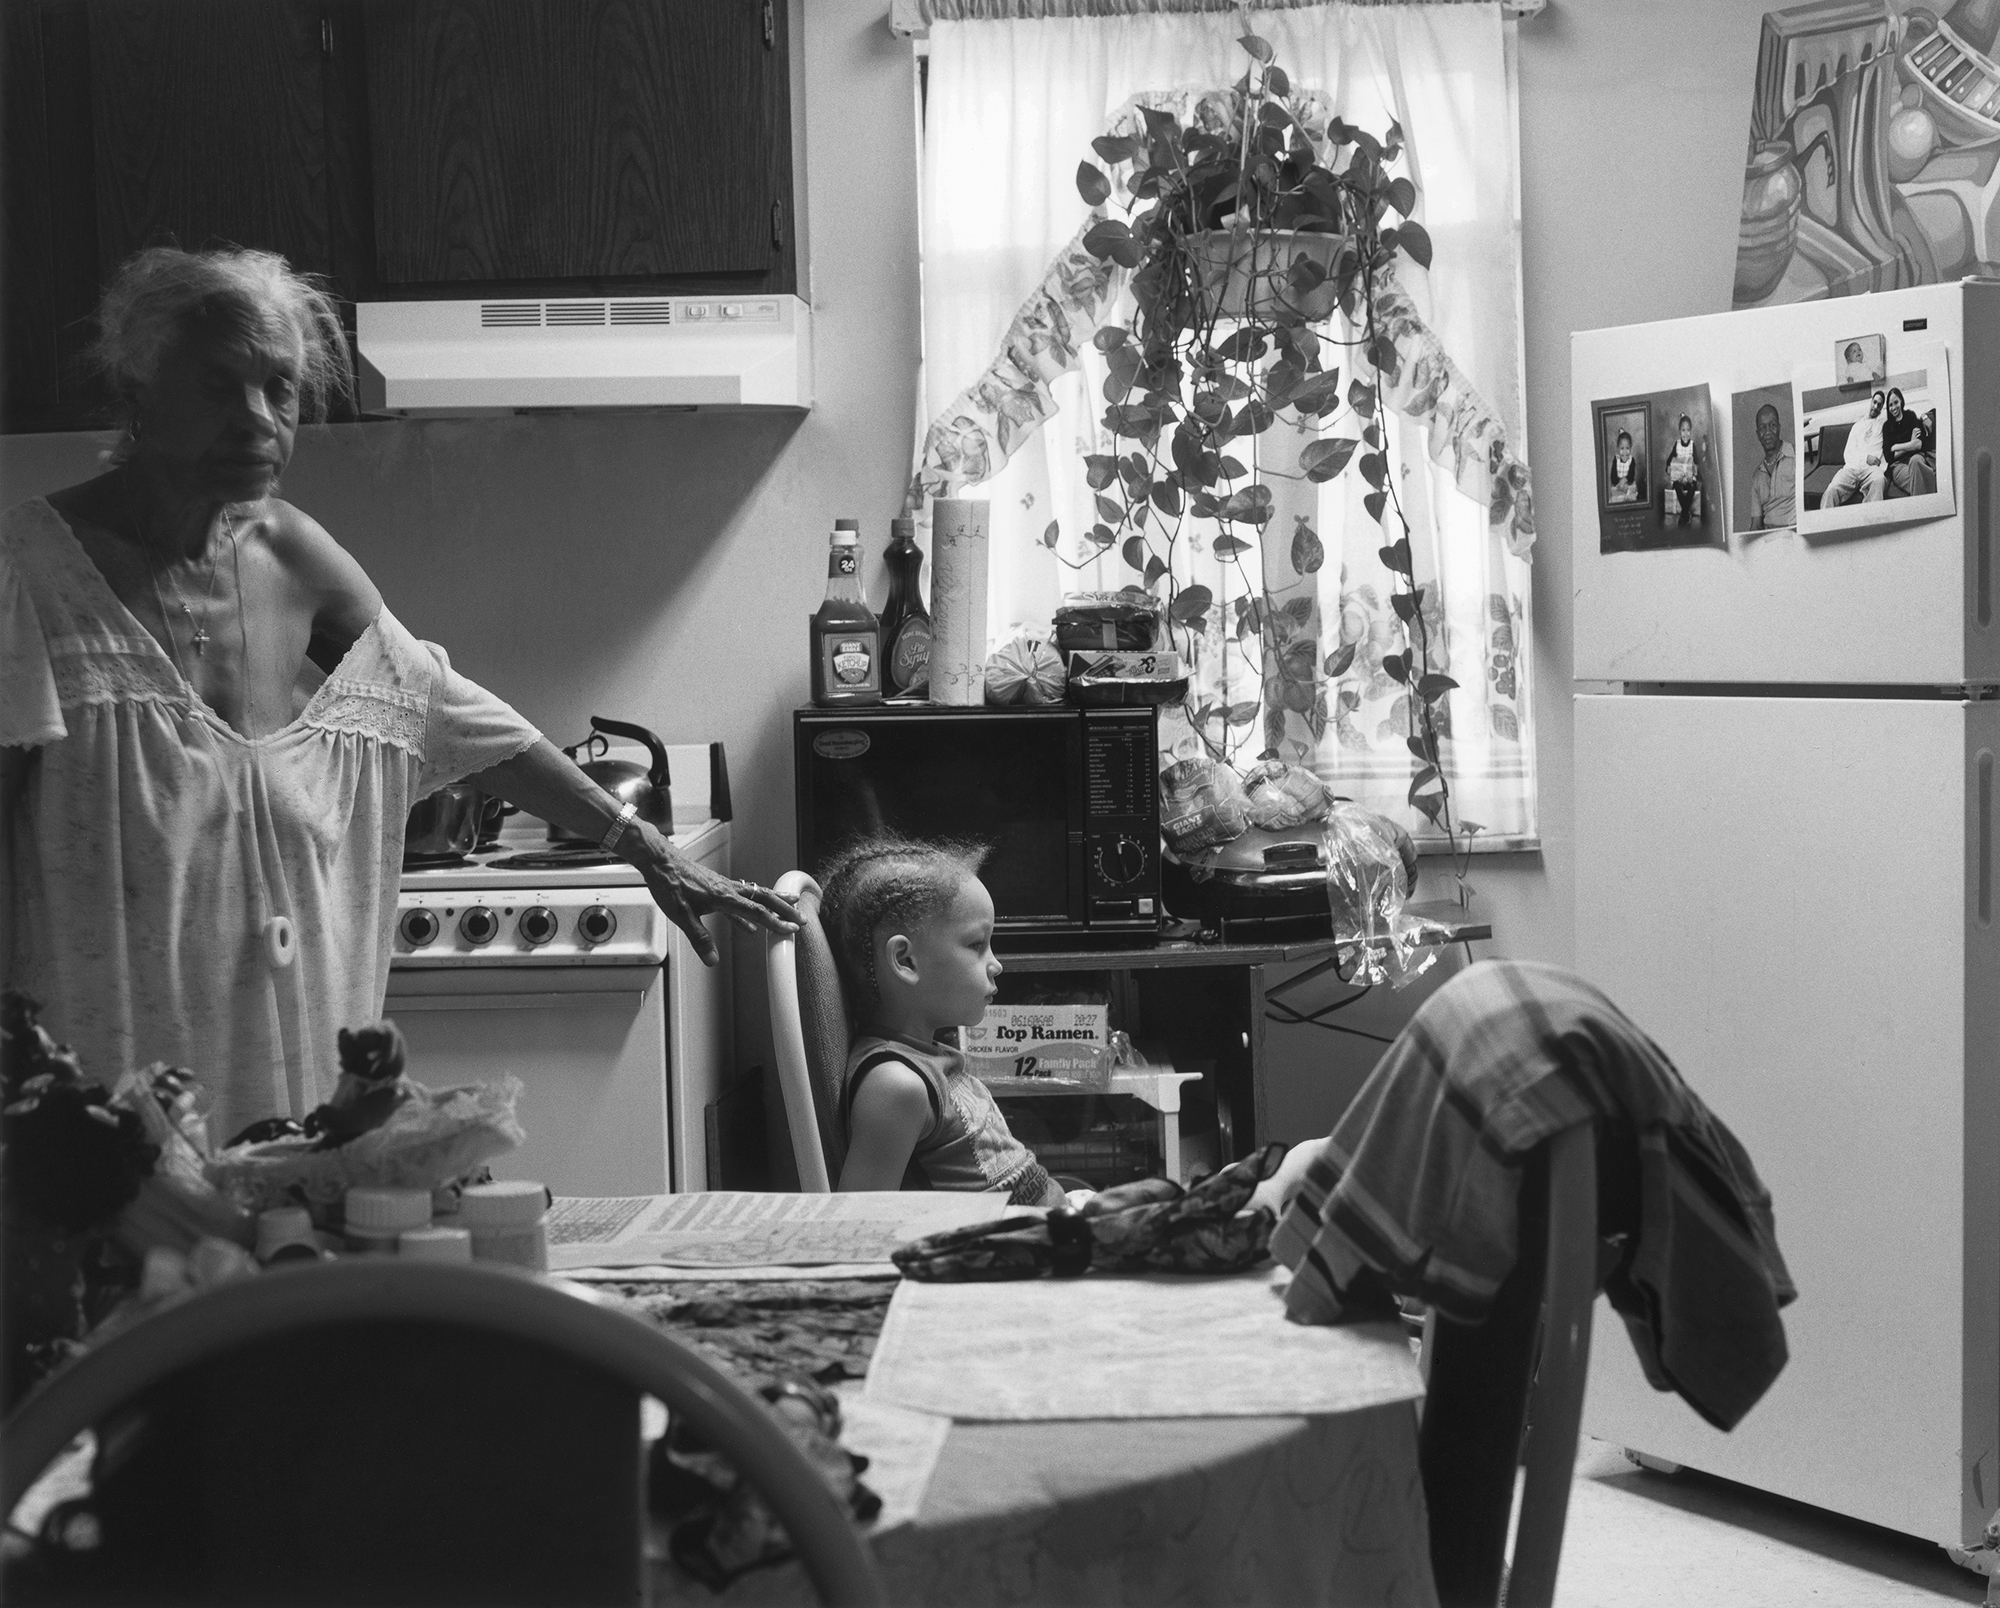 LaToya Ruby Frazier, Grandma Ruby and J.C. in Her Kitchen, 2006, from The Notion of FamilyLaToya Ruby Frazier, Grandma Ruby and J.C. in Her Kitchen, 2006, from The Notion of Family (Aperture, 2014)